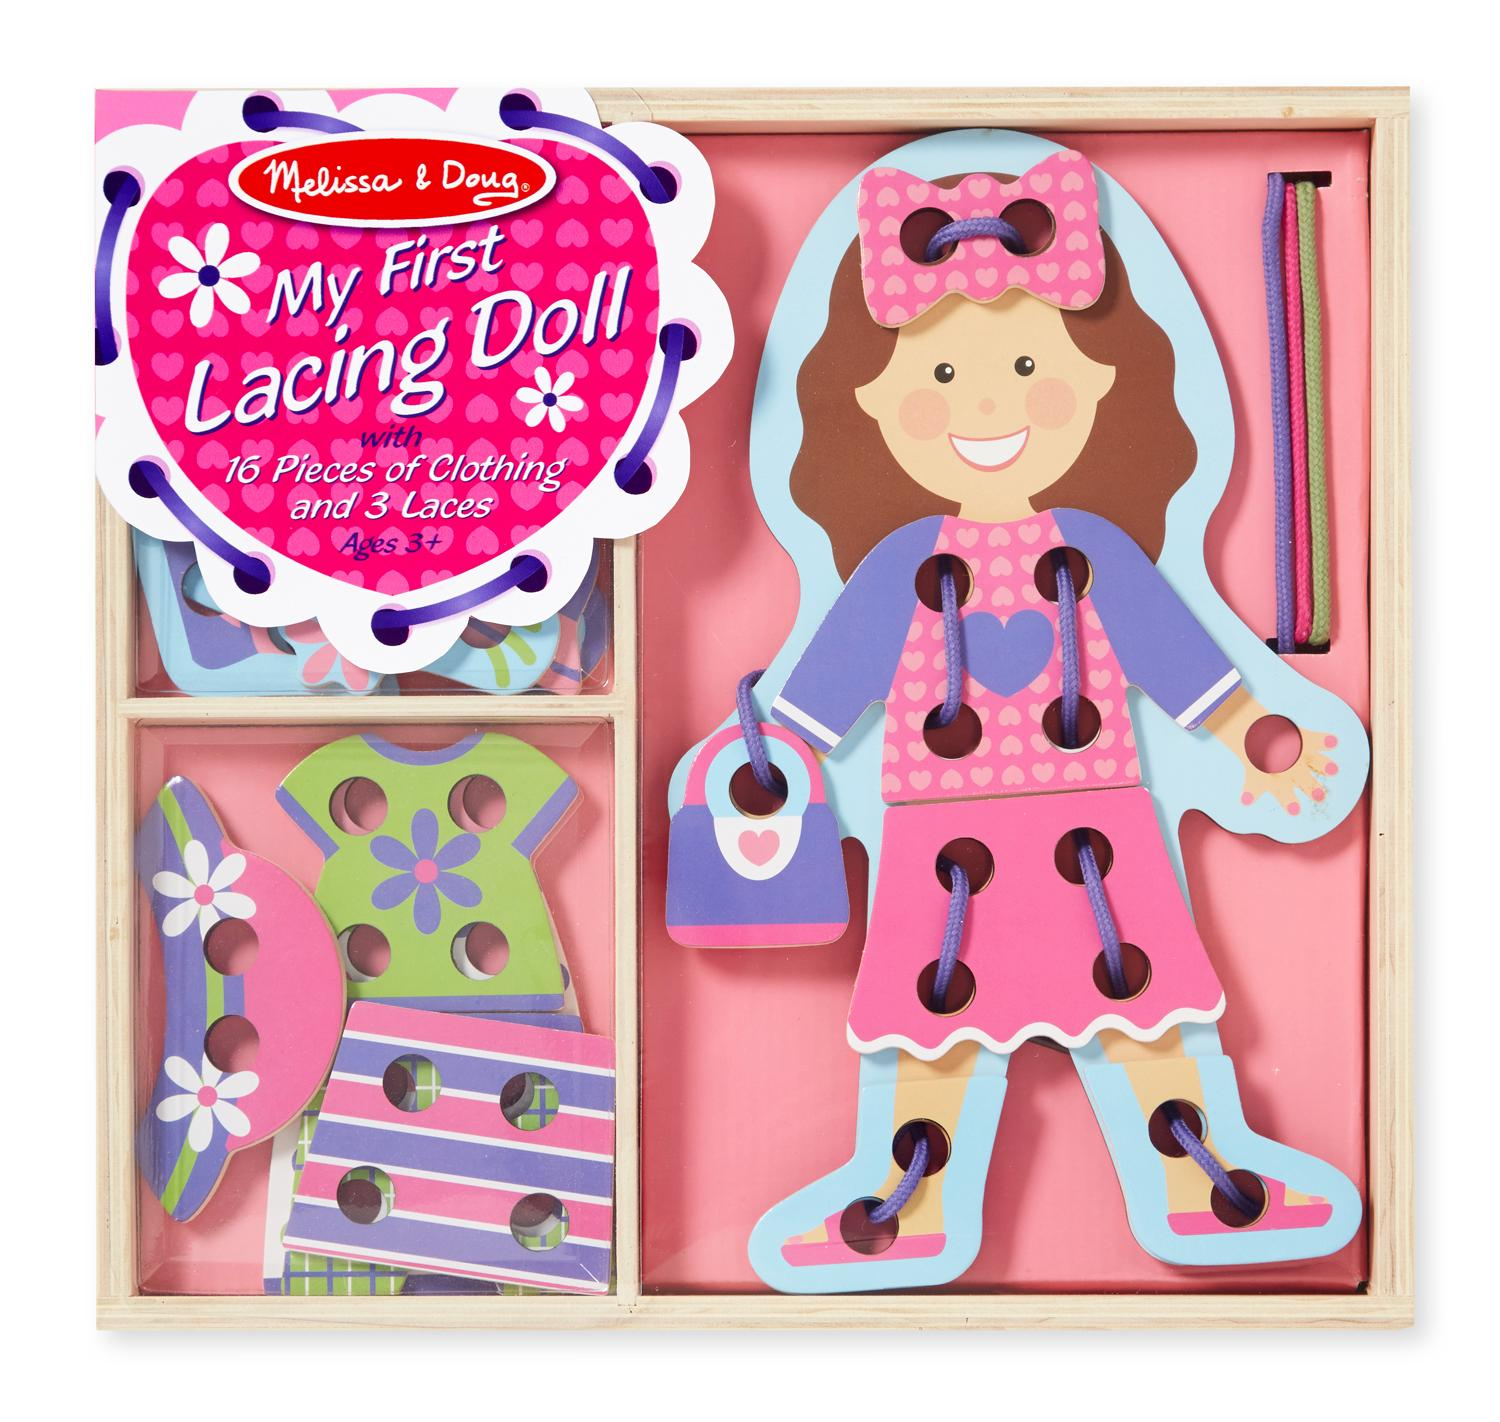 Amazon.com: Melissa & Doug My First Lacing Doll With 16 Pieces of ...